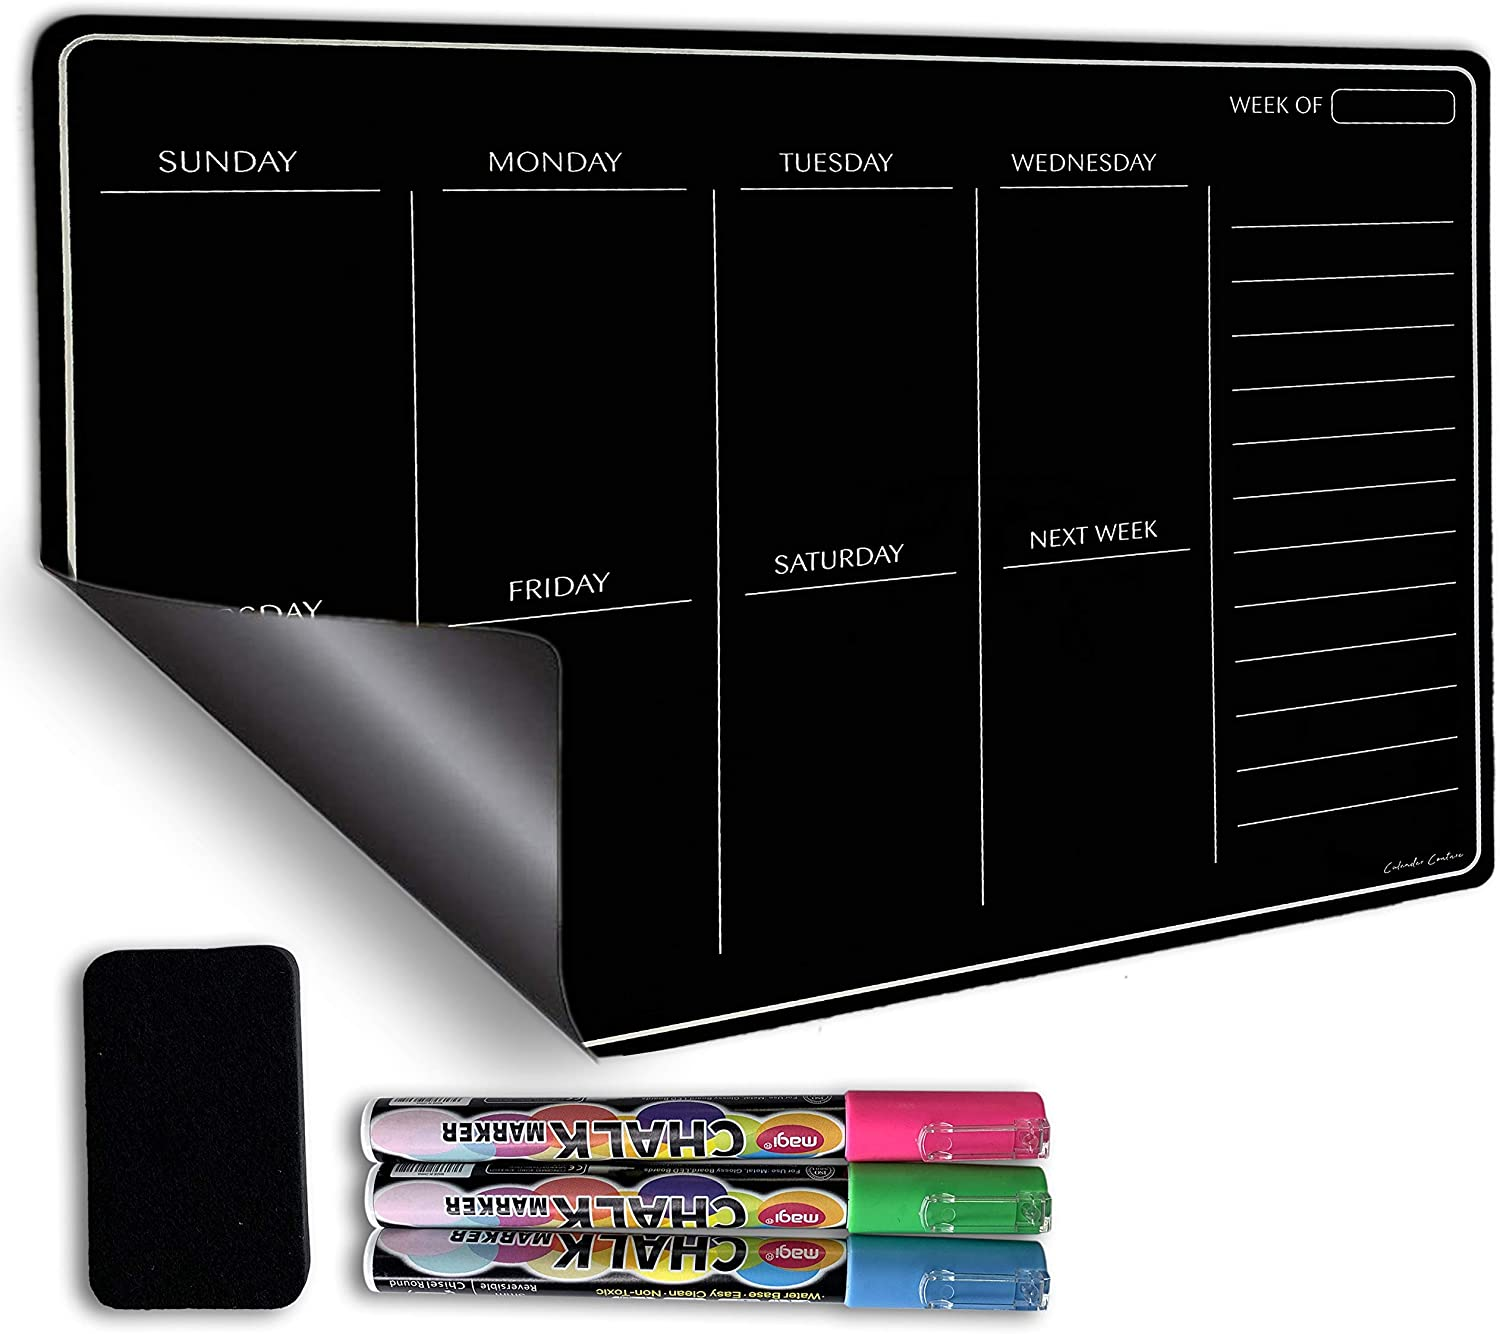 Magnetic Refrigerator Calendar Black Board Dry Erase Planner KIT. Days of The Week, Sturdy 8mm Thick, Comes with Dry Eraser and 3 Fluorescent Chalk Markers. No Stain, Easy Clean for Organization